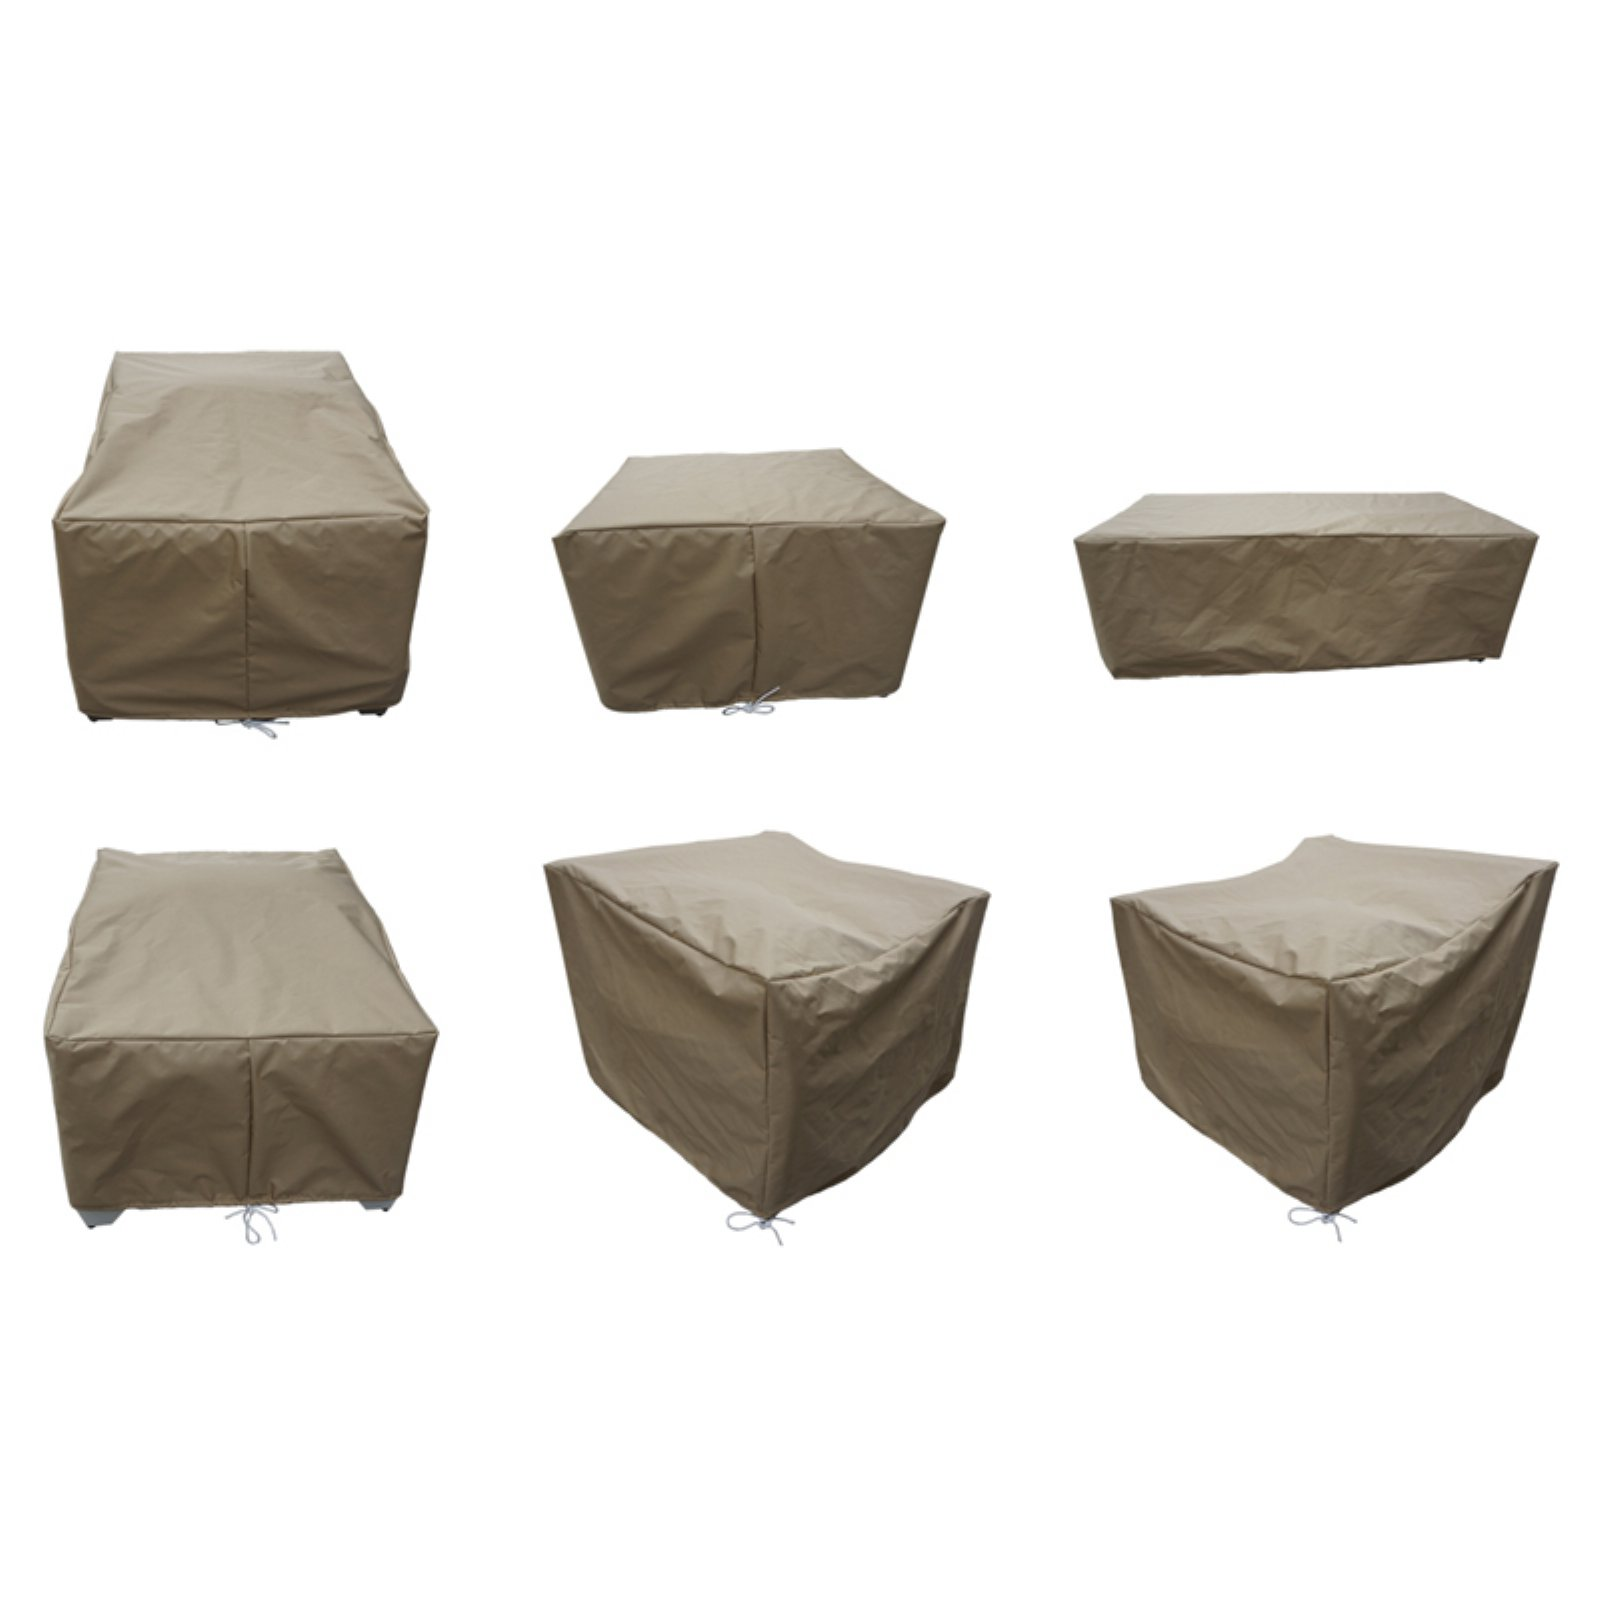 TK Classics Fairmont 08c Outdoor Furniture Cover Set